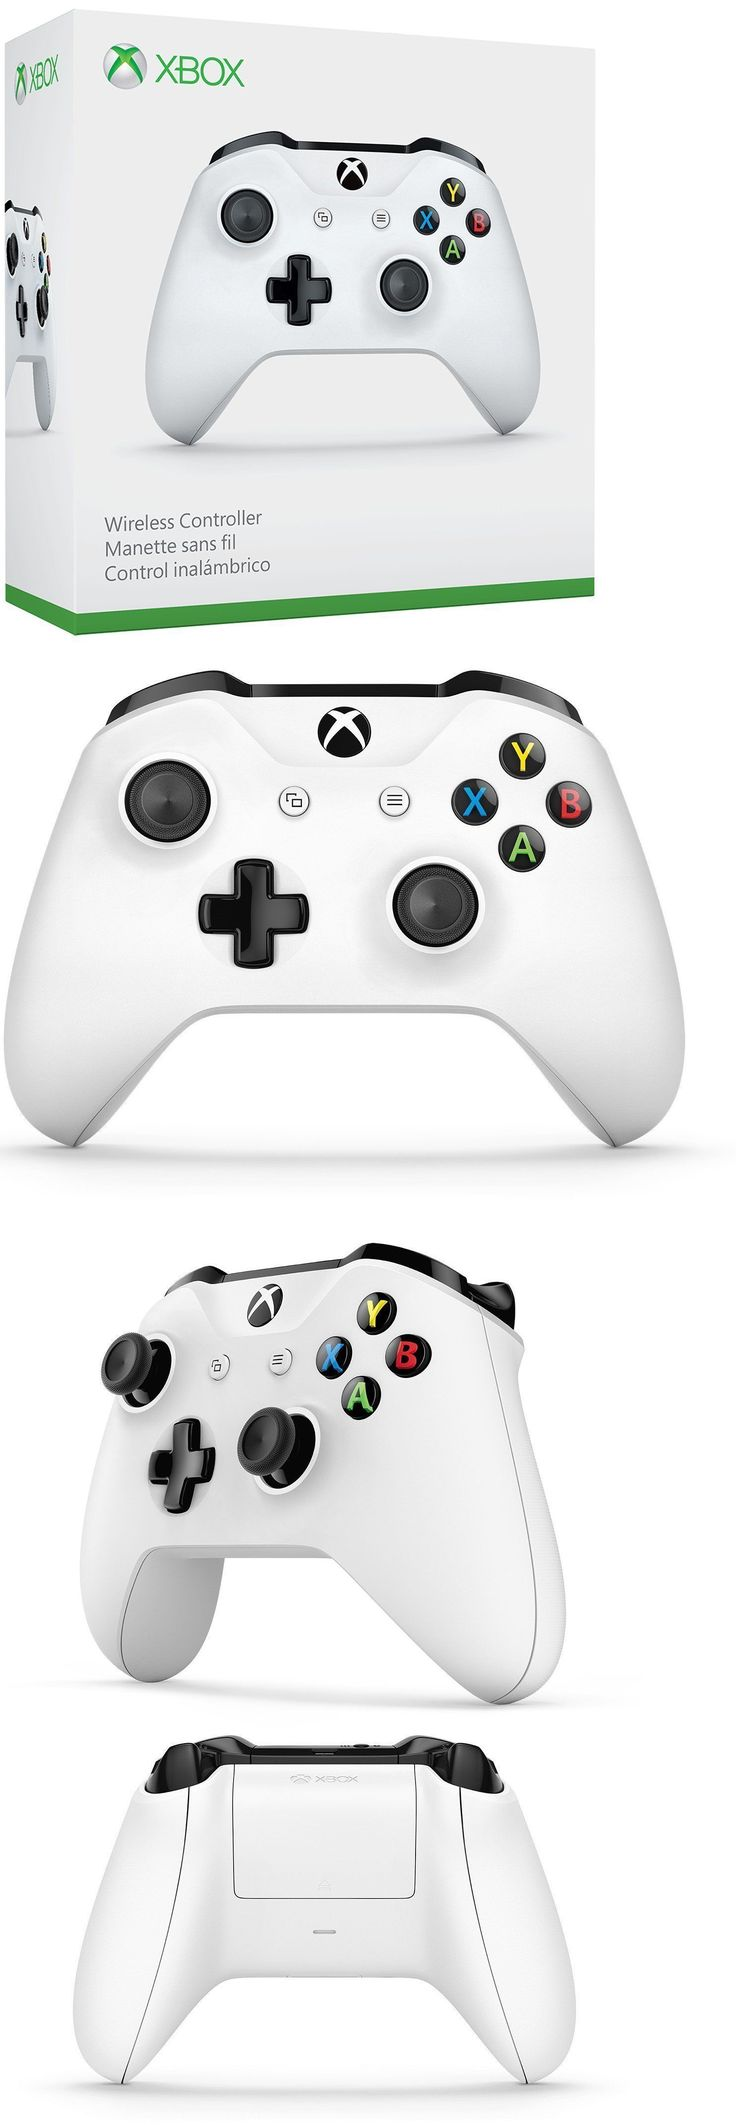 Video Gaming: Xbox One S Wireless Microsoft Controller Glacier White, Brand New W Bluetooth BUY IT NOW ONLY: $54.99